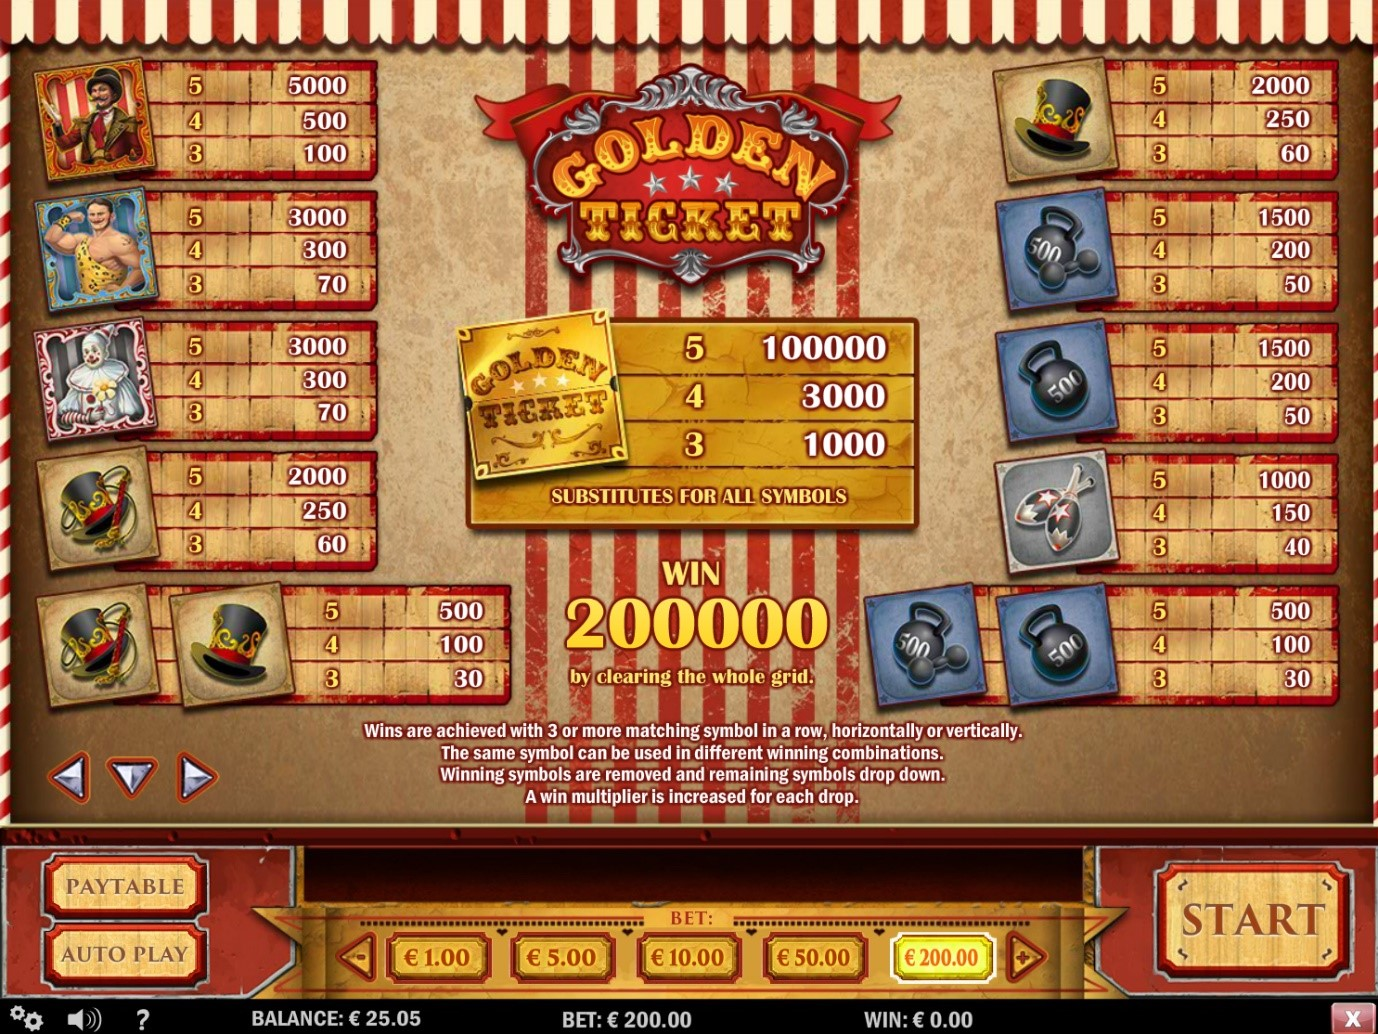 PlayOJO's Golden Ticket slot